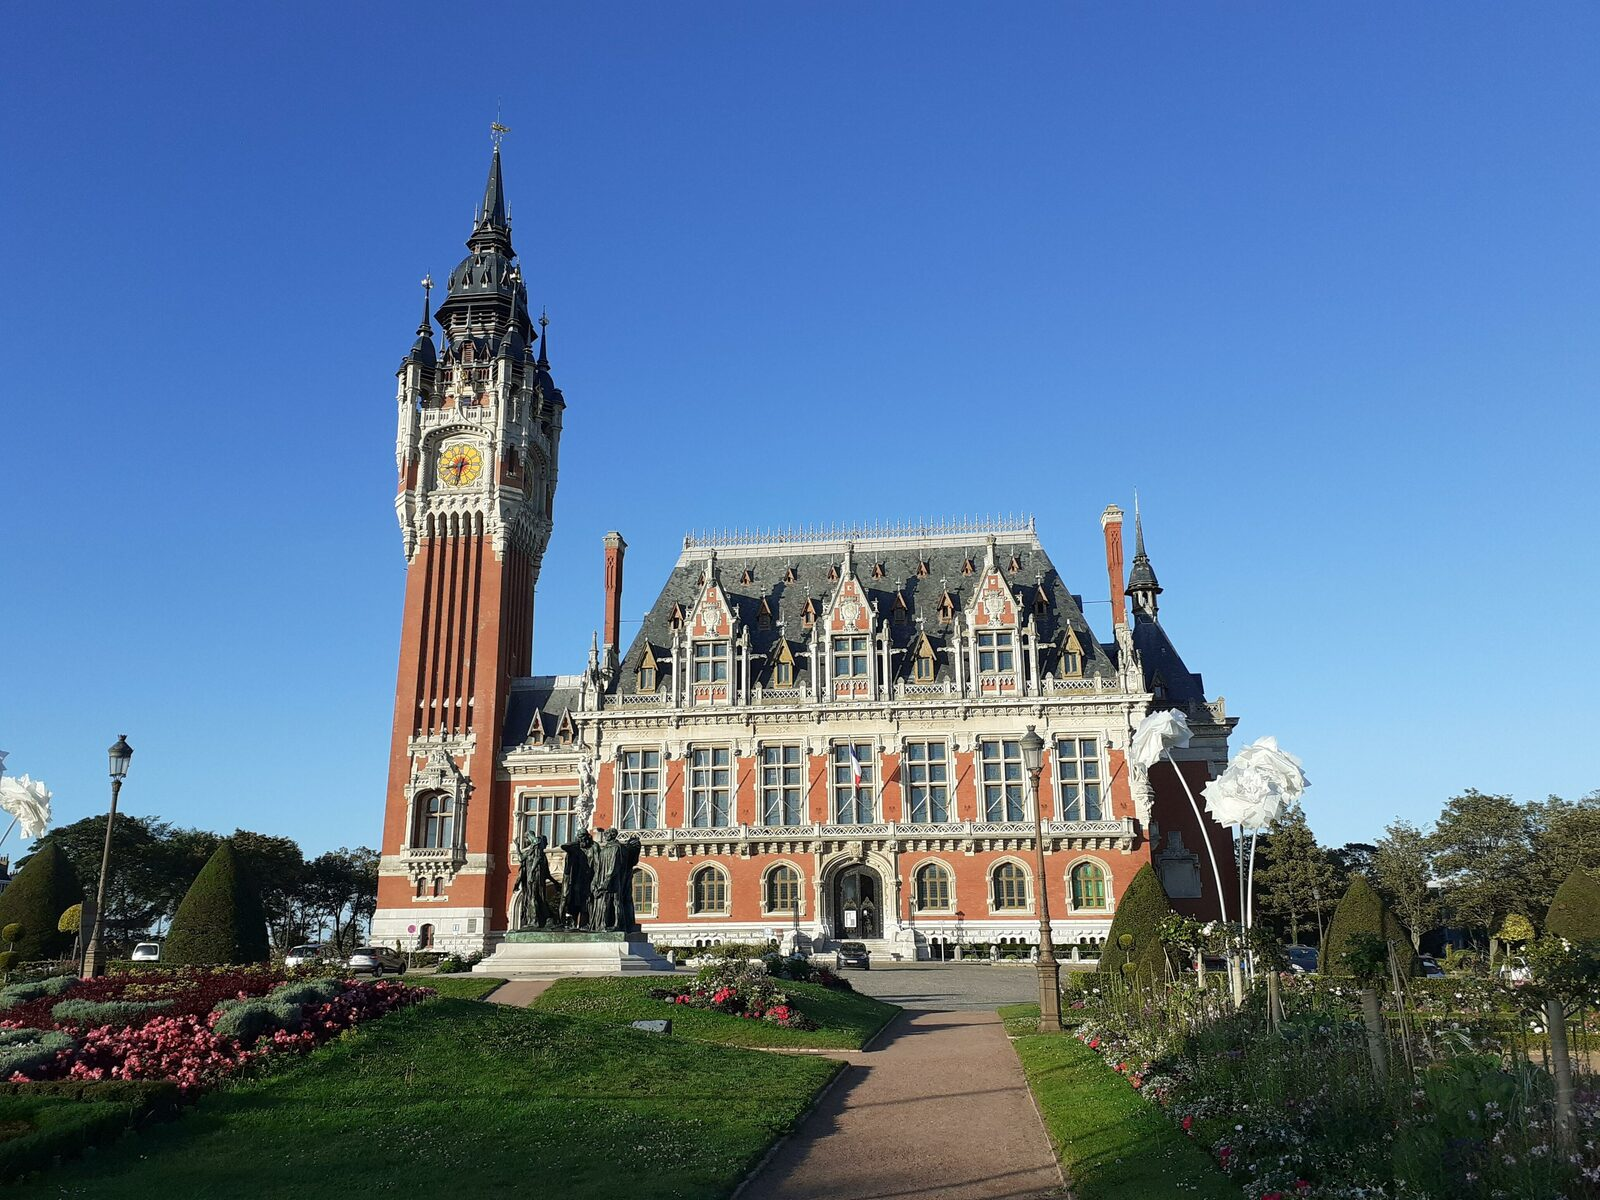 Find out what to do in Calais, France and stay at our holiday residences